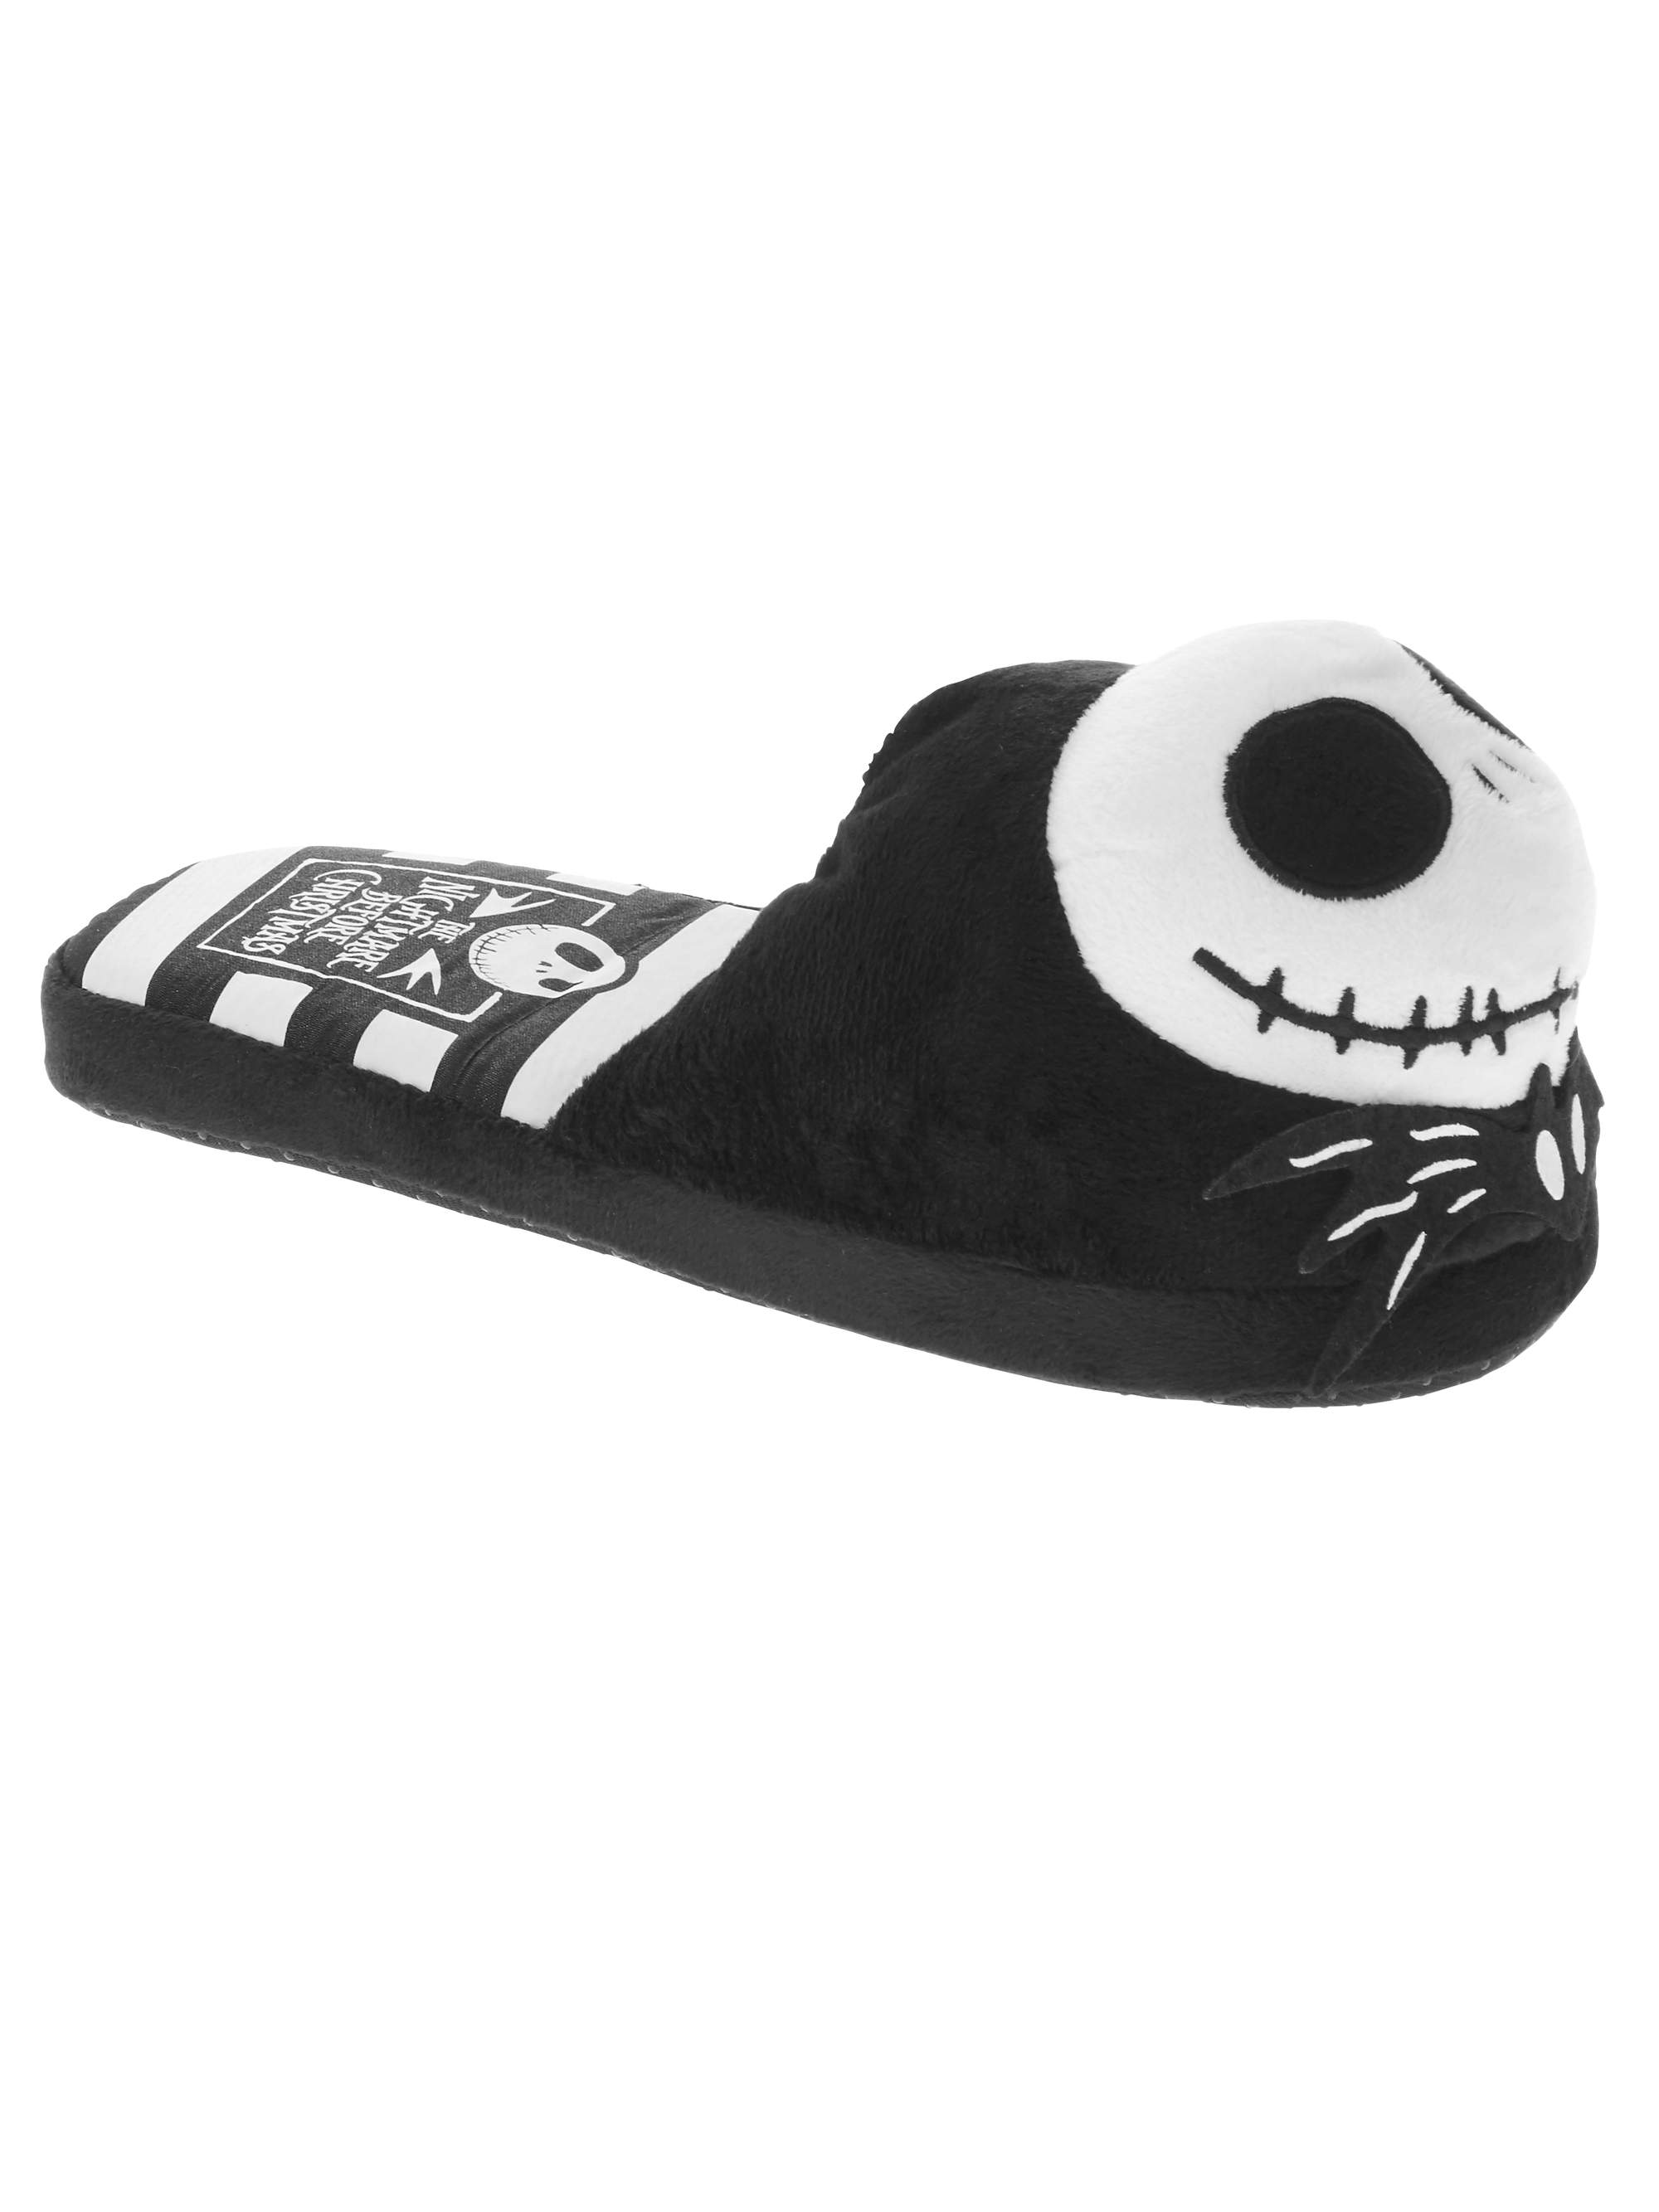 Nightmare Before Christmas Slippers – K Xquisite